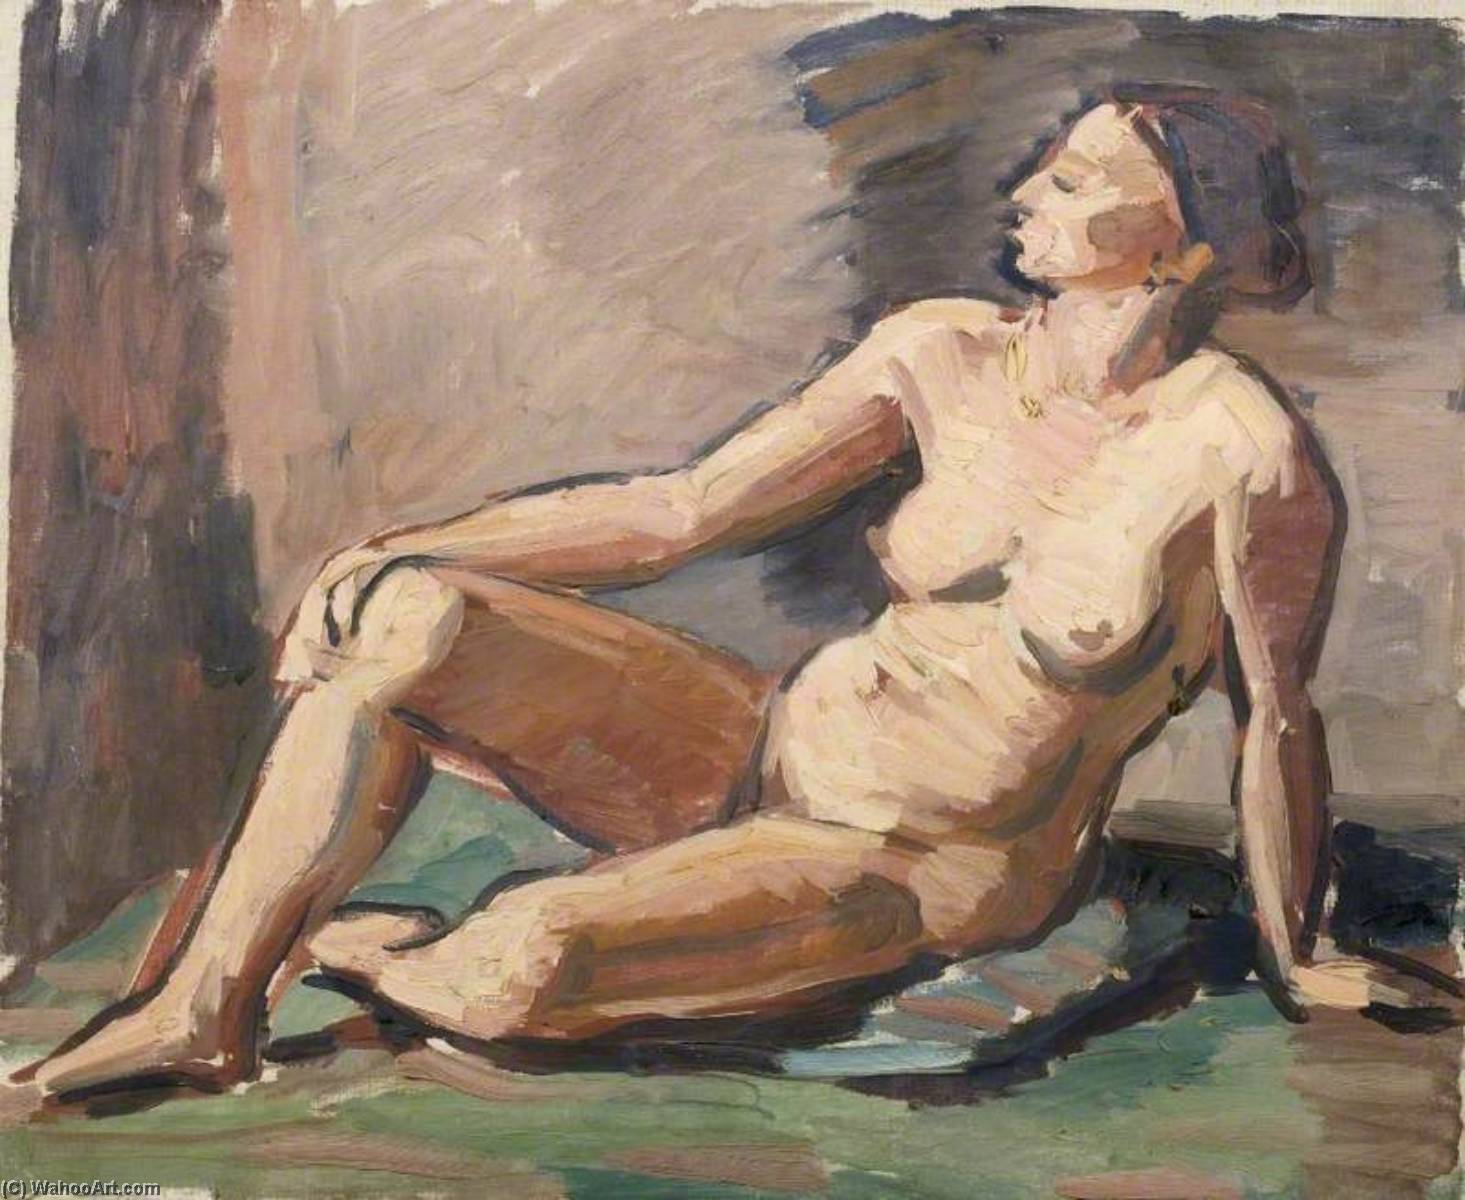 Reclining Nude, Oil On Canvas by Theodor Kern